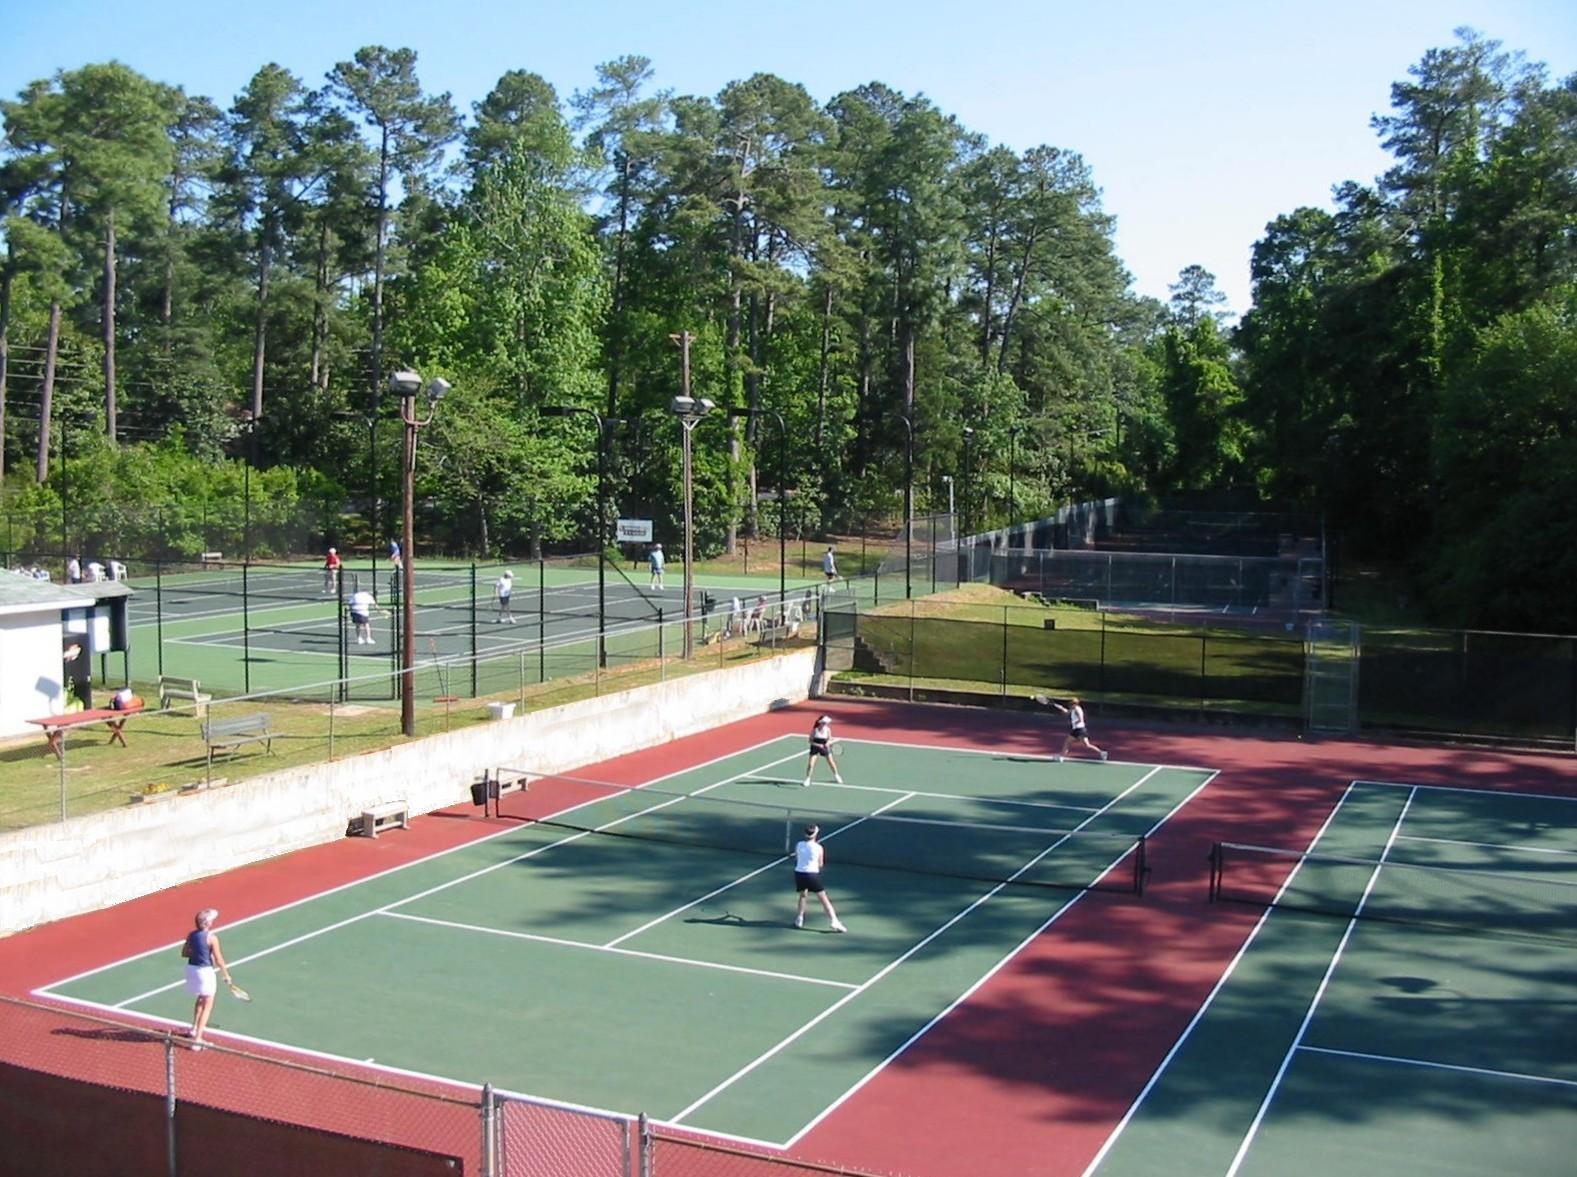 Tennis courts at the Fermata Club.